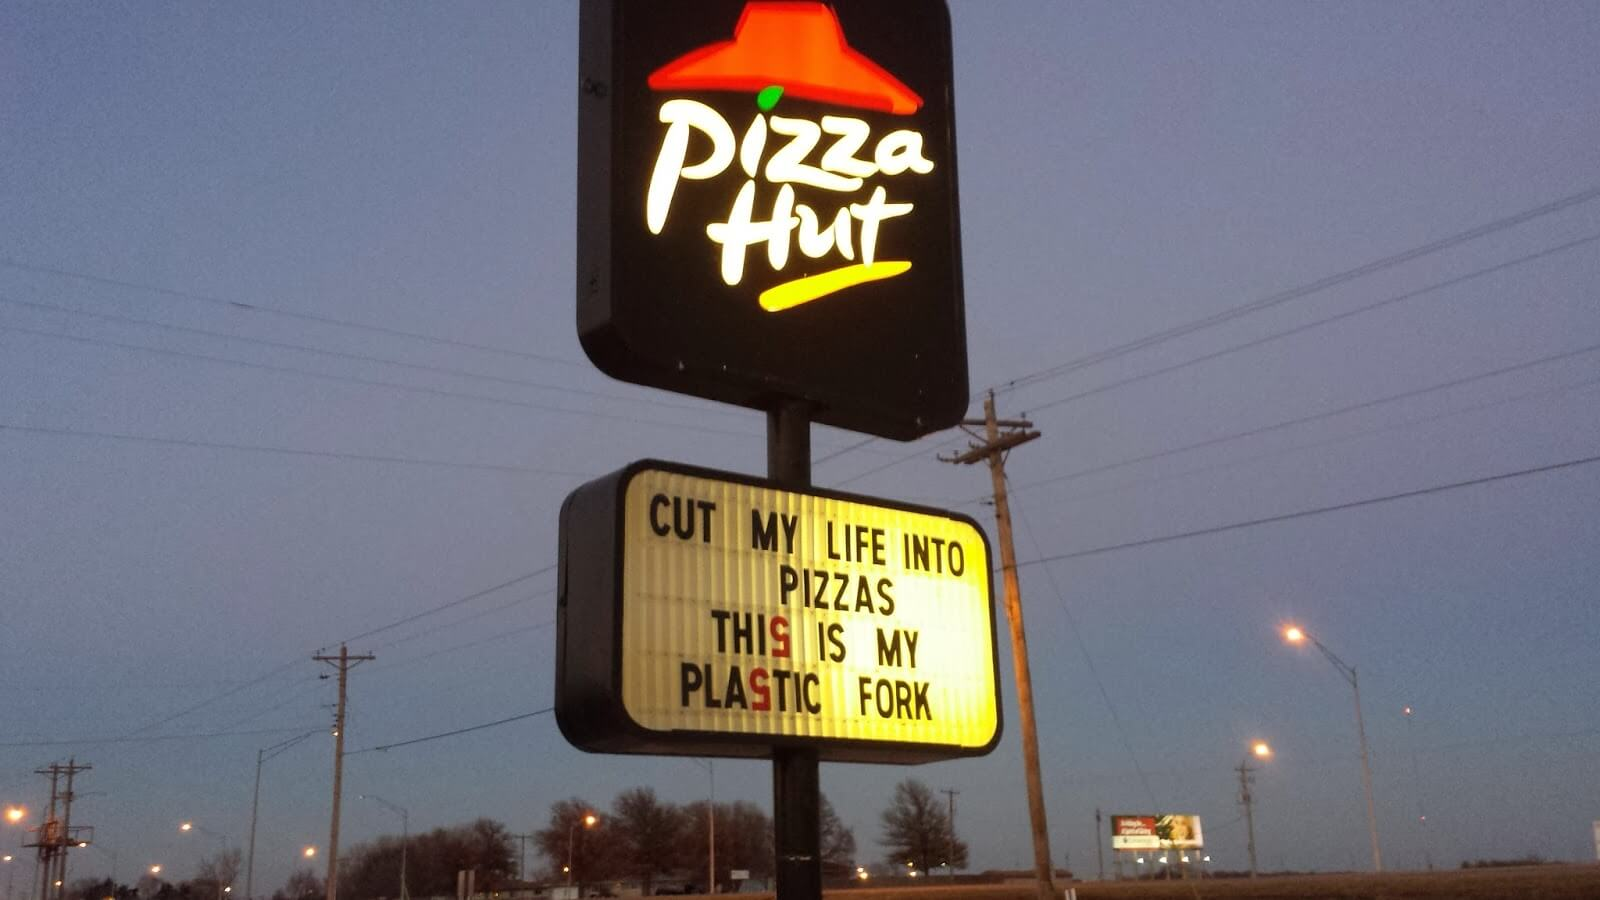 Even the pizza guys have a sense of humor